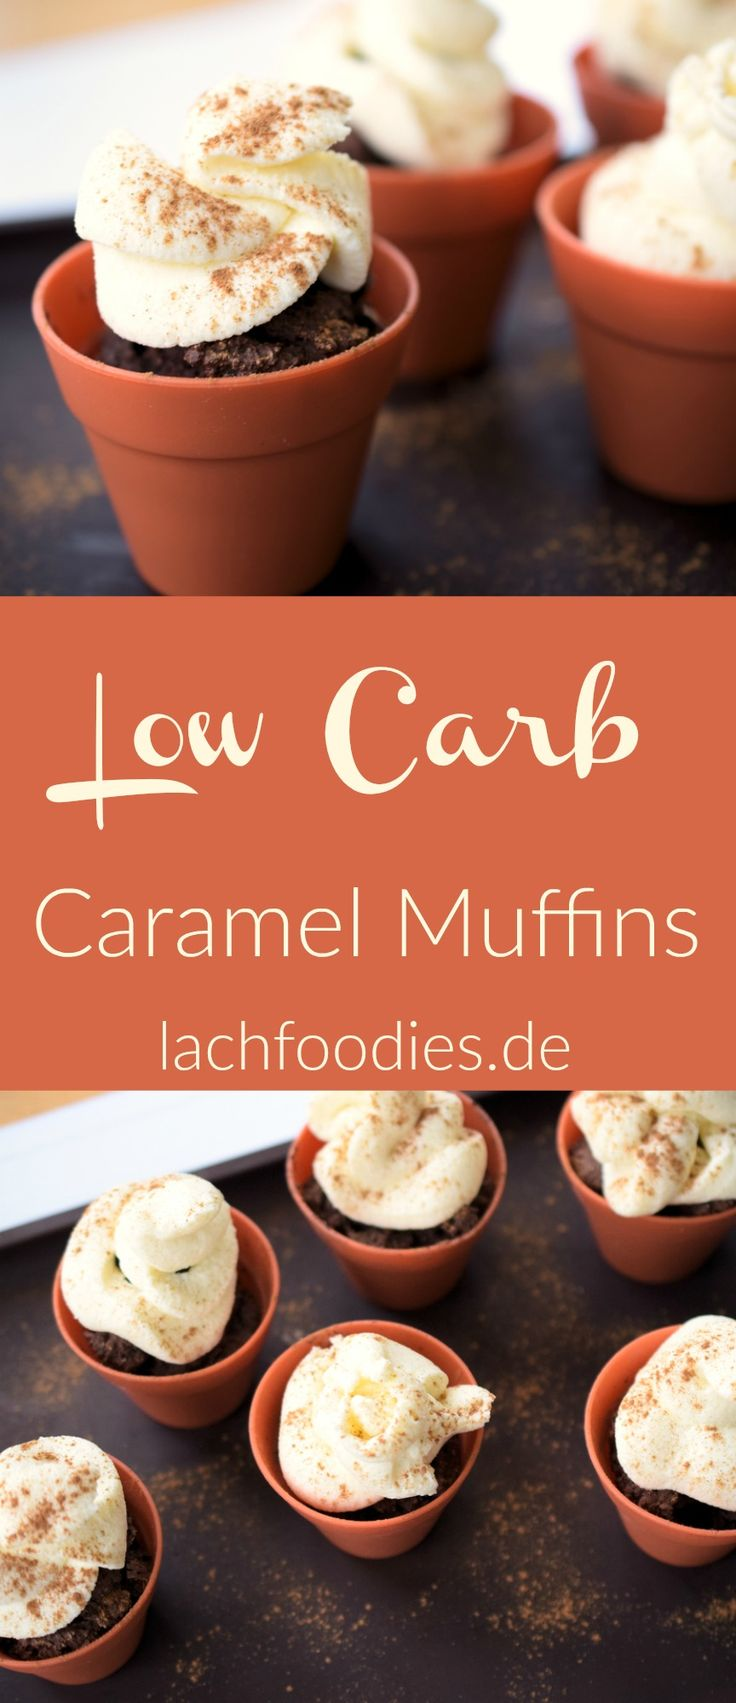 Sweet & salty caramel muffins. These low carb sweets are amazing for an healthy dessert.